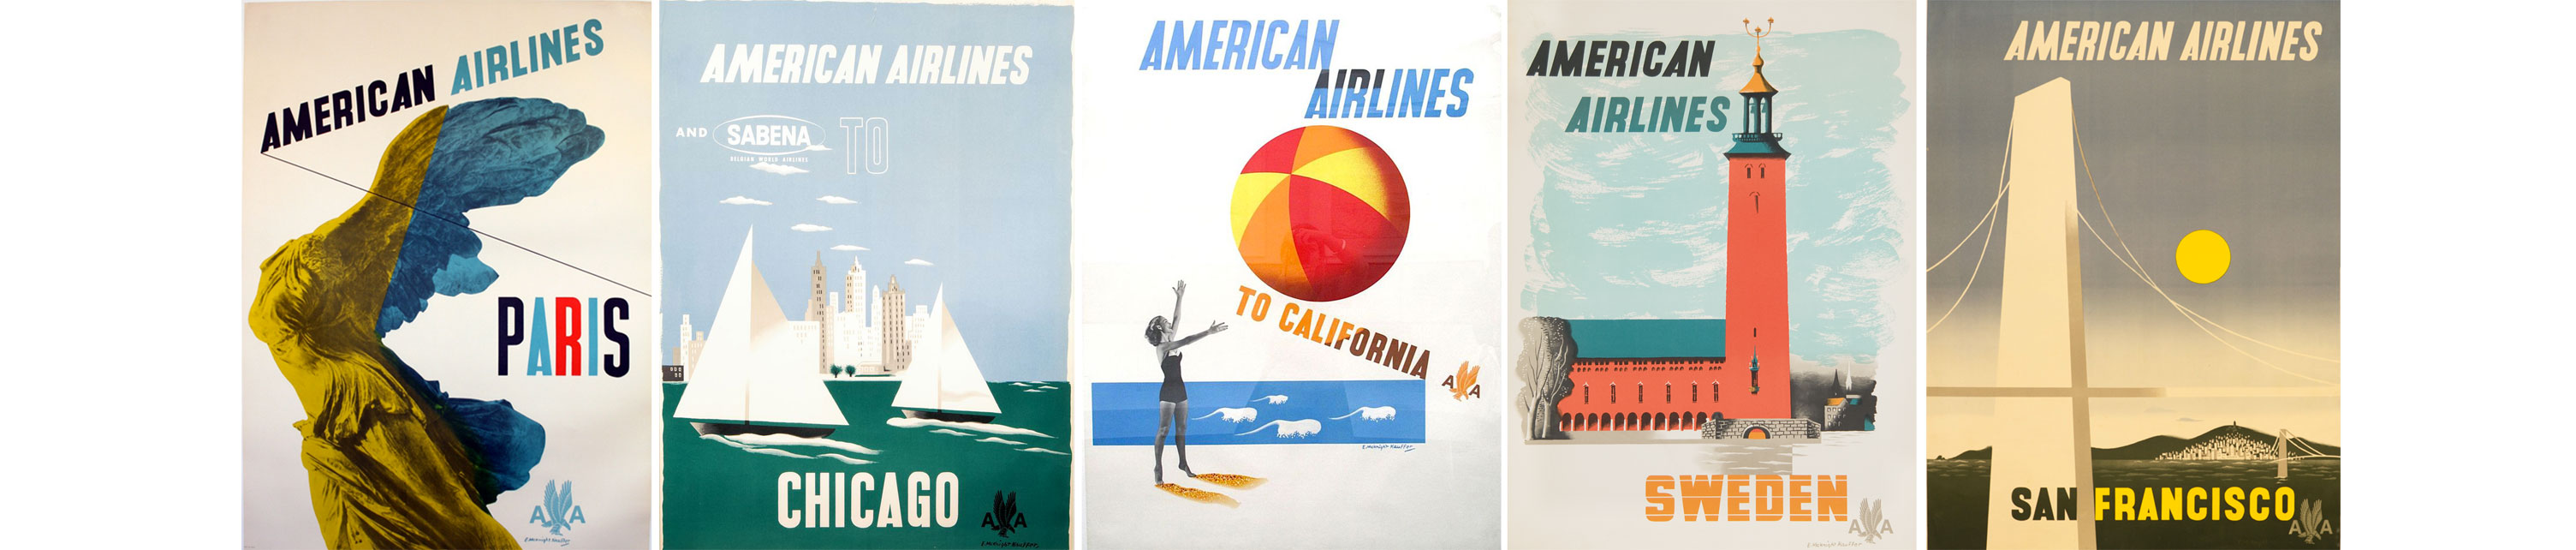 Edward-McKnight-Kauffer-US-affiches-american-airlines-03